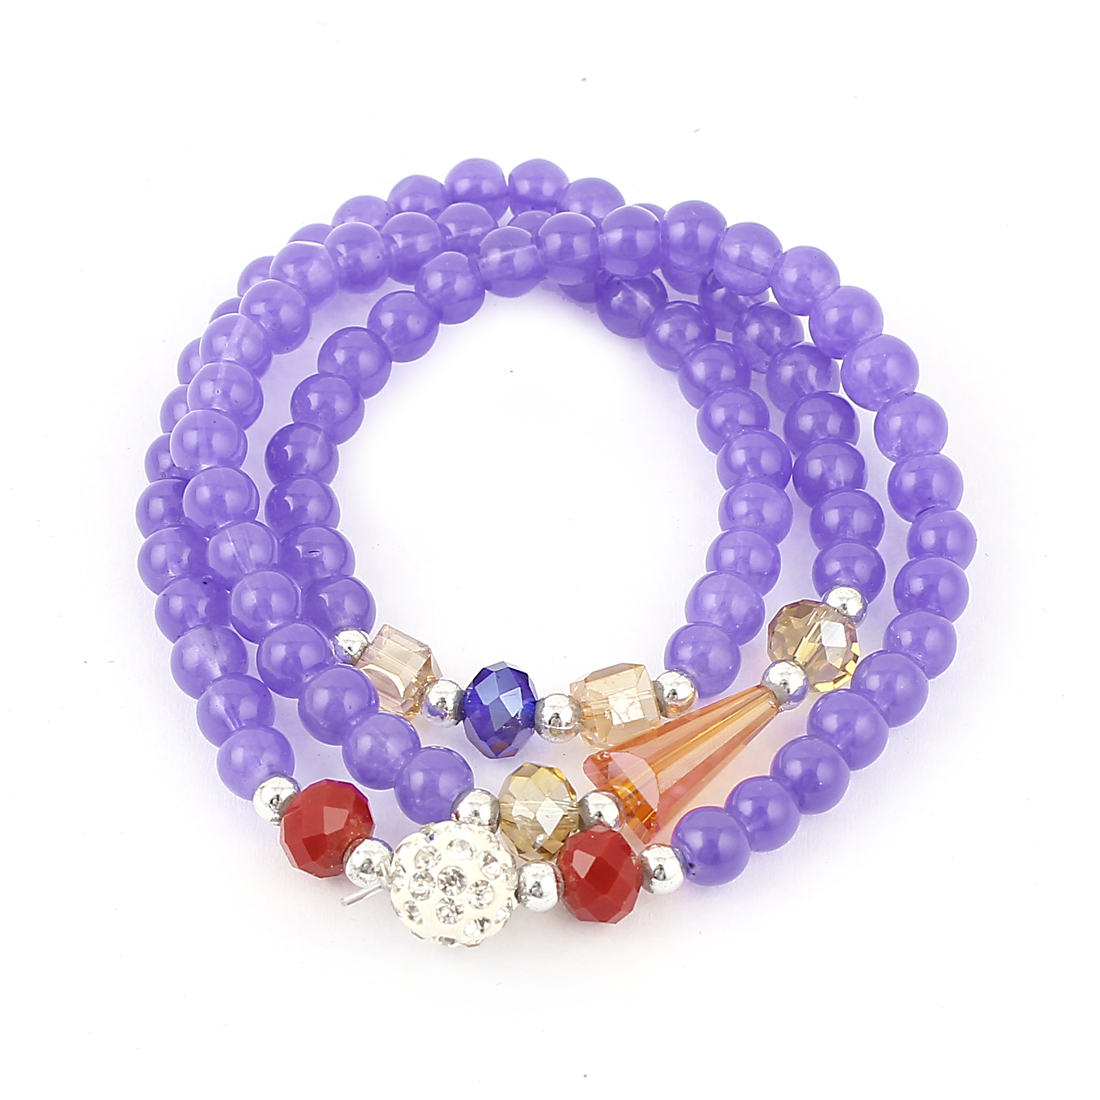 Women Elastic String Plastic Round Cubic Beads Bracelet Necklace Purple